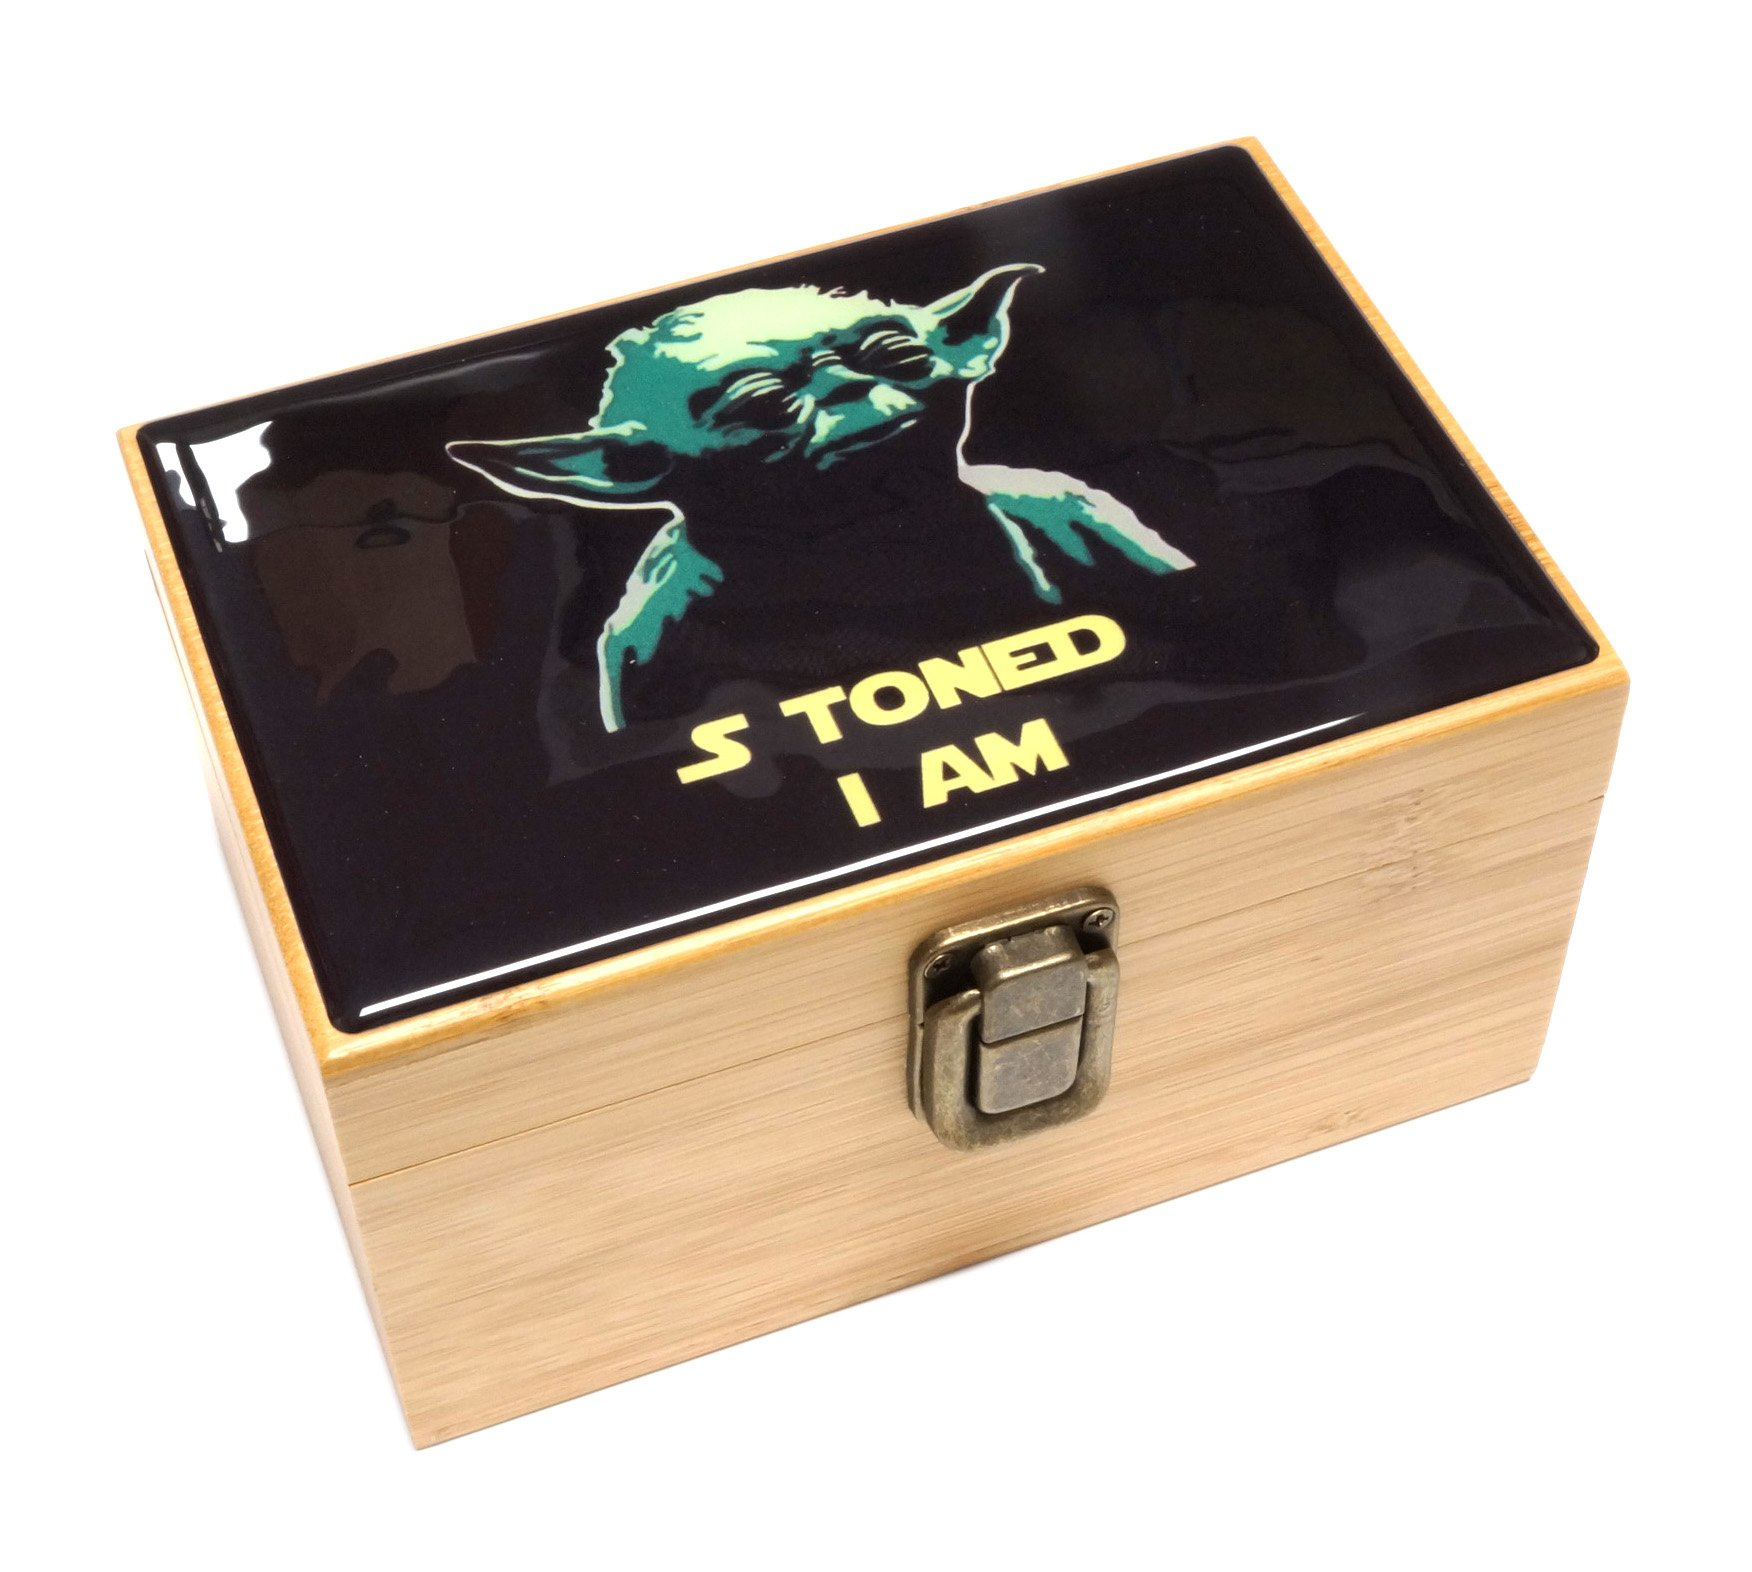 Cali Factory S Toned I Am Design - Grinder, Jar in Medium Size Sacred Geometry Stash Box with Latch Combo Gift Package Item# MED062118-8